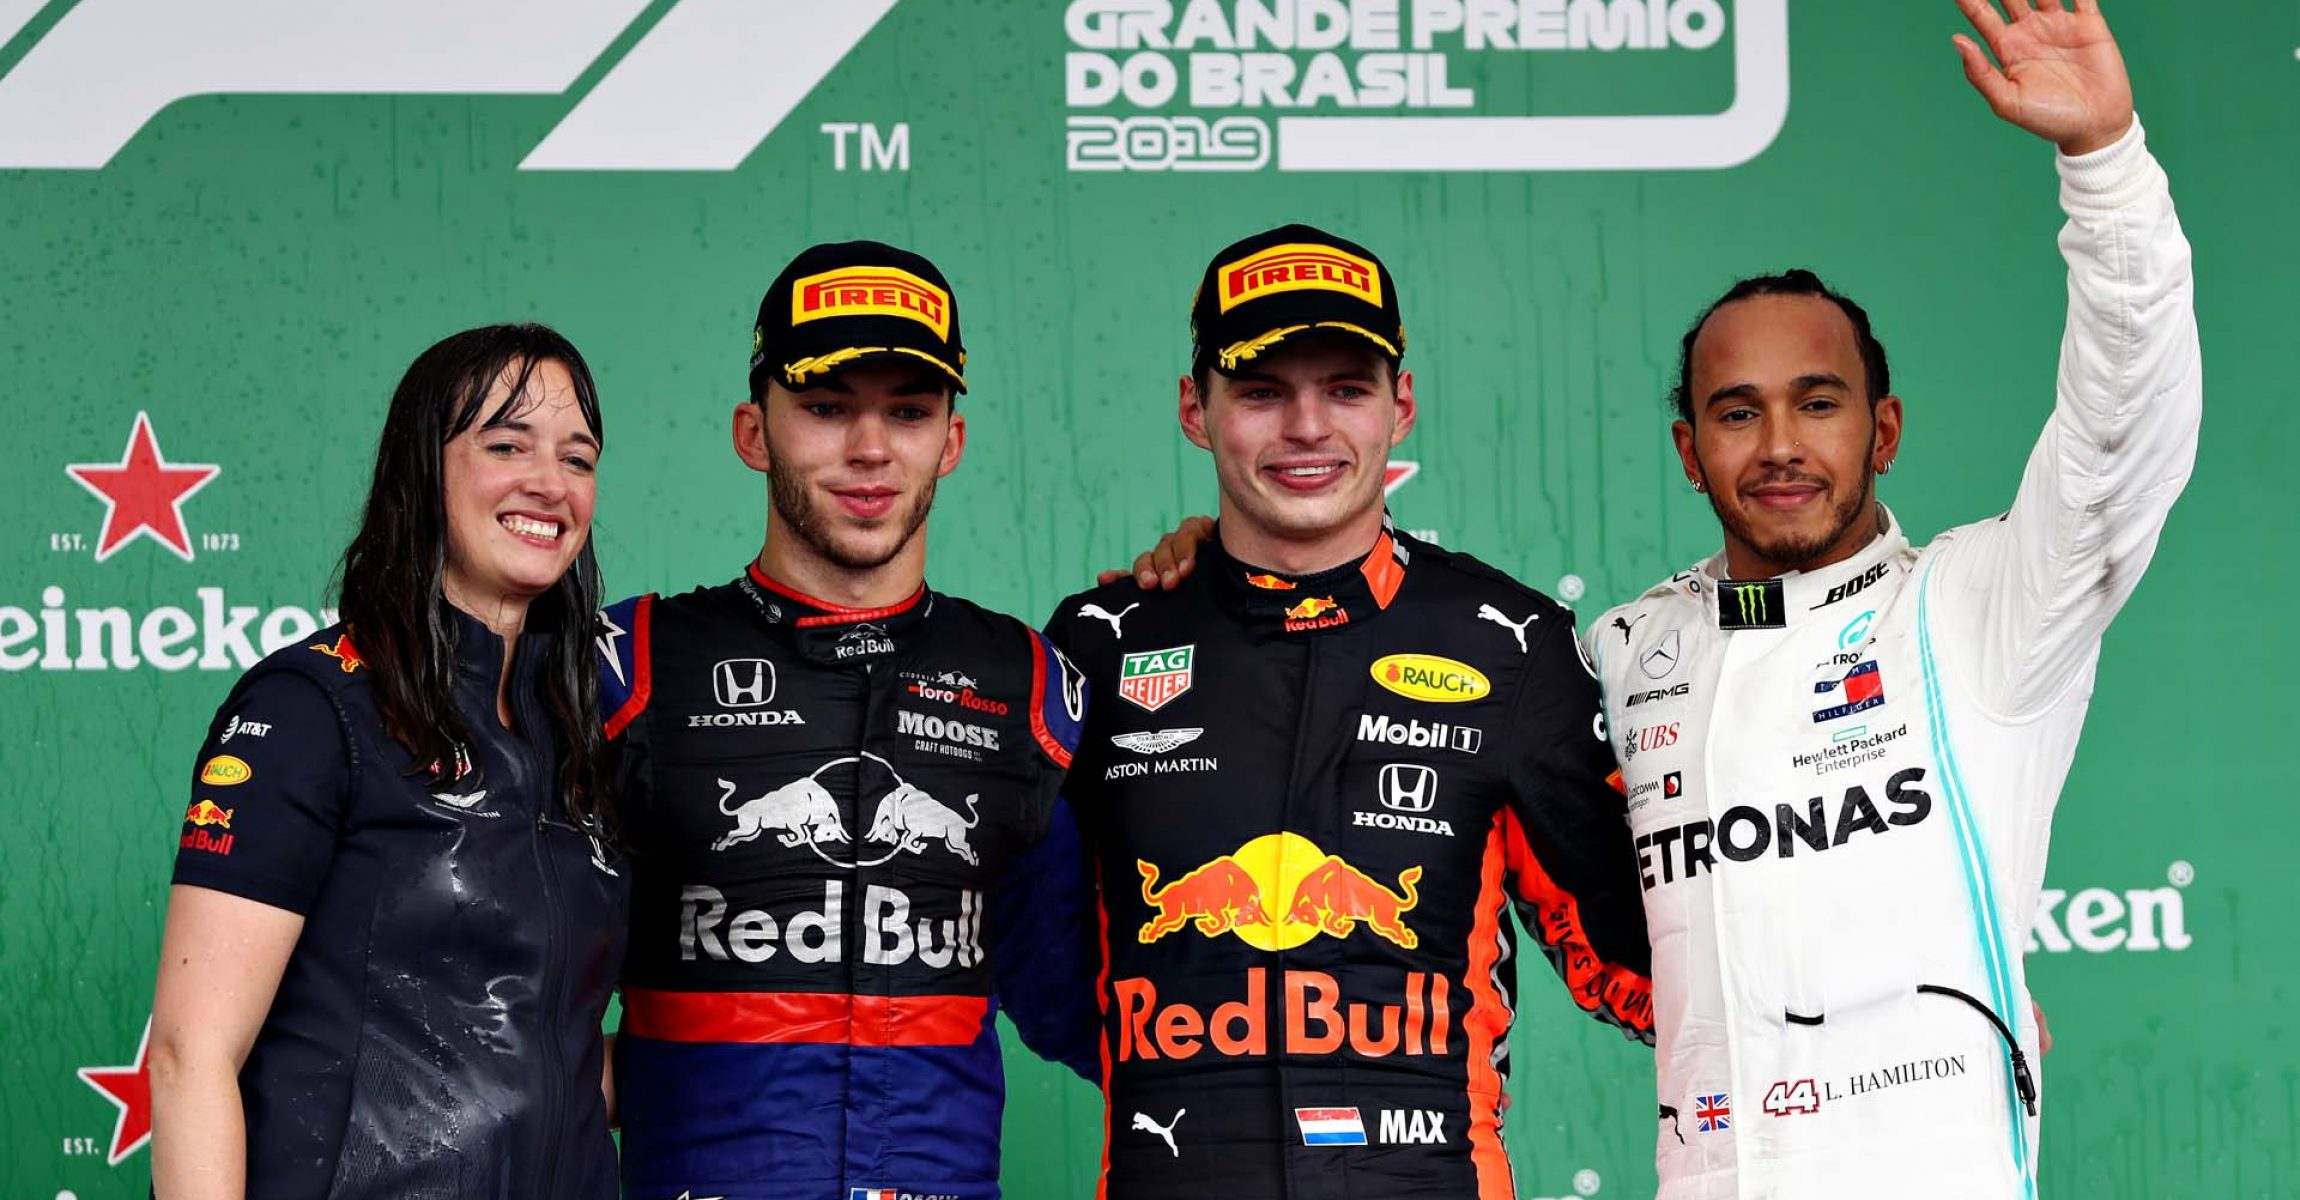 SAO PAULO, BRAZIL - NOVEMBER 17: Top three finishers Max Verstappen of Netherlands and Red Bull Racing, Pierre Gasly of France and Scuderia Toro Rosso and Lewis Hamilton of Great Britain and Mercedes GP celebrate on the podium during the F1 Grand Prix of Brazil at Autodromo Jose Carlos Pace on November 17, 2019 in Sao Paulo, Brazil. (Photo by Mark Thompson/Getty Images) // Getty Images / Red Bull Content Pool // AP-227DWW5451W11 // Usage for editorial use only // Hannah Schmitz